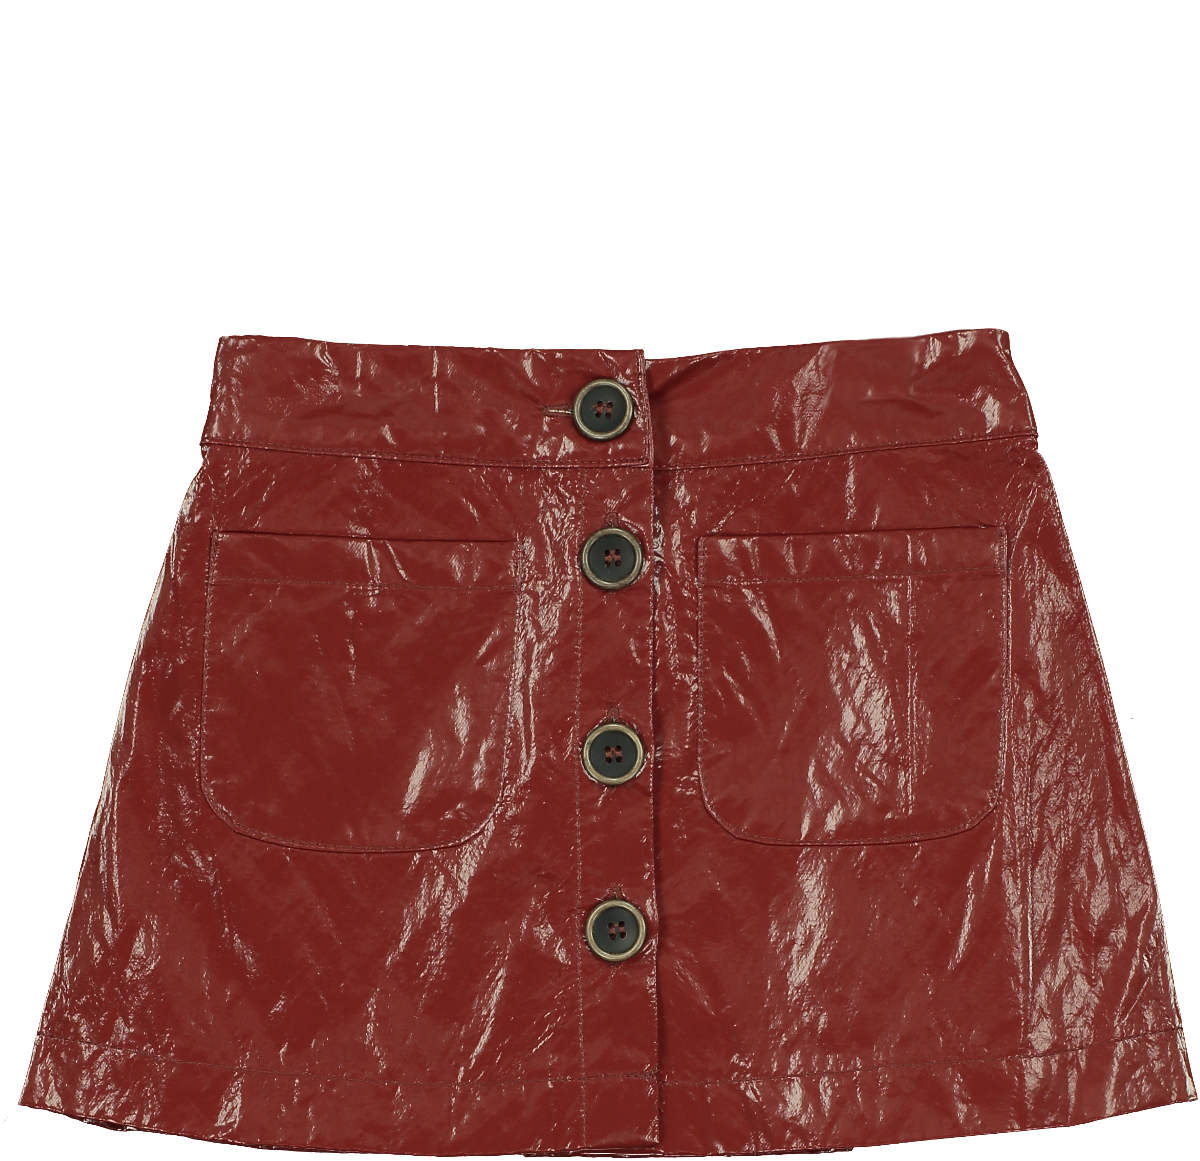 Tarantela Rust Button Skirt